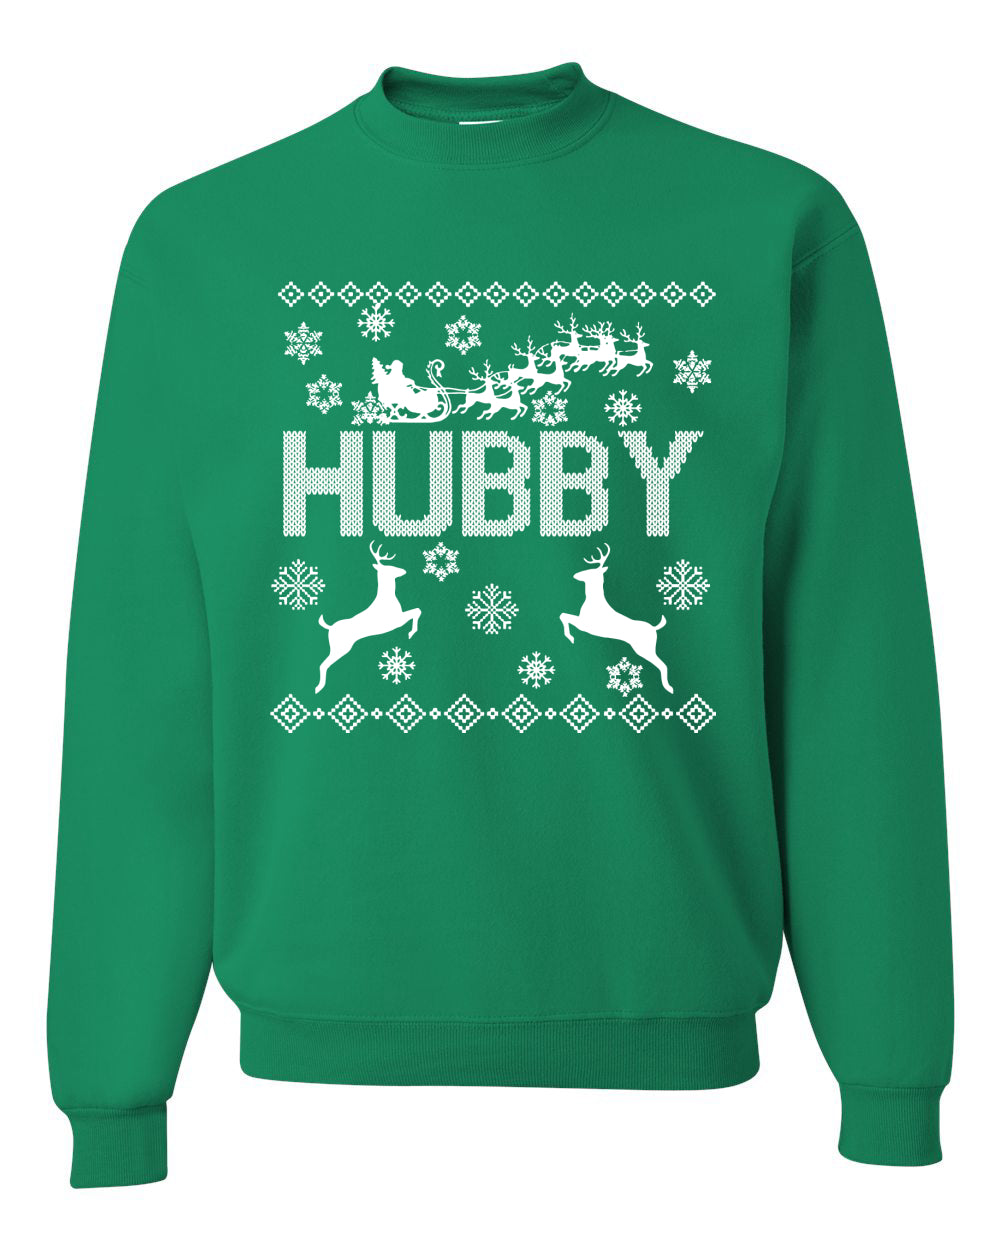 Christmas Hubby Love Ugly Christmas Sweater Christmas Unisex Crewneck Graphic Sweatshirt